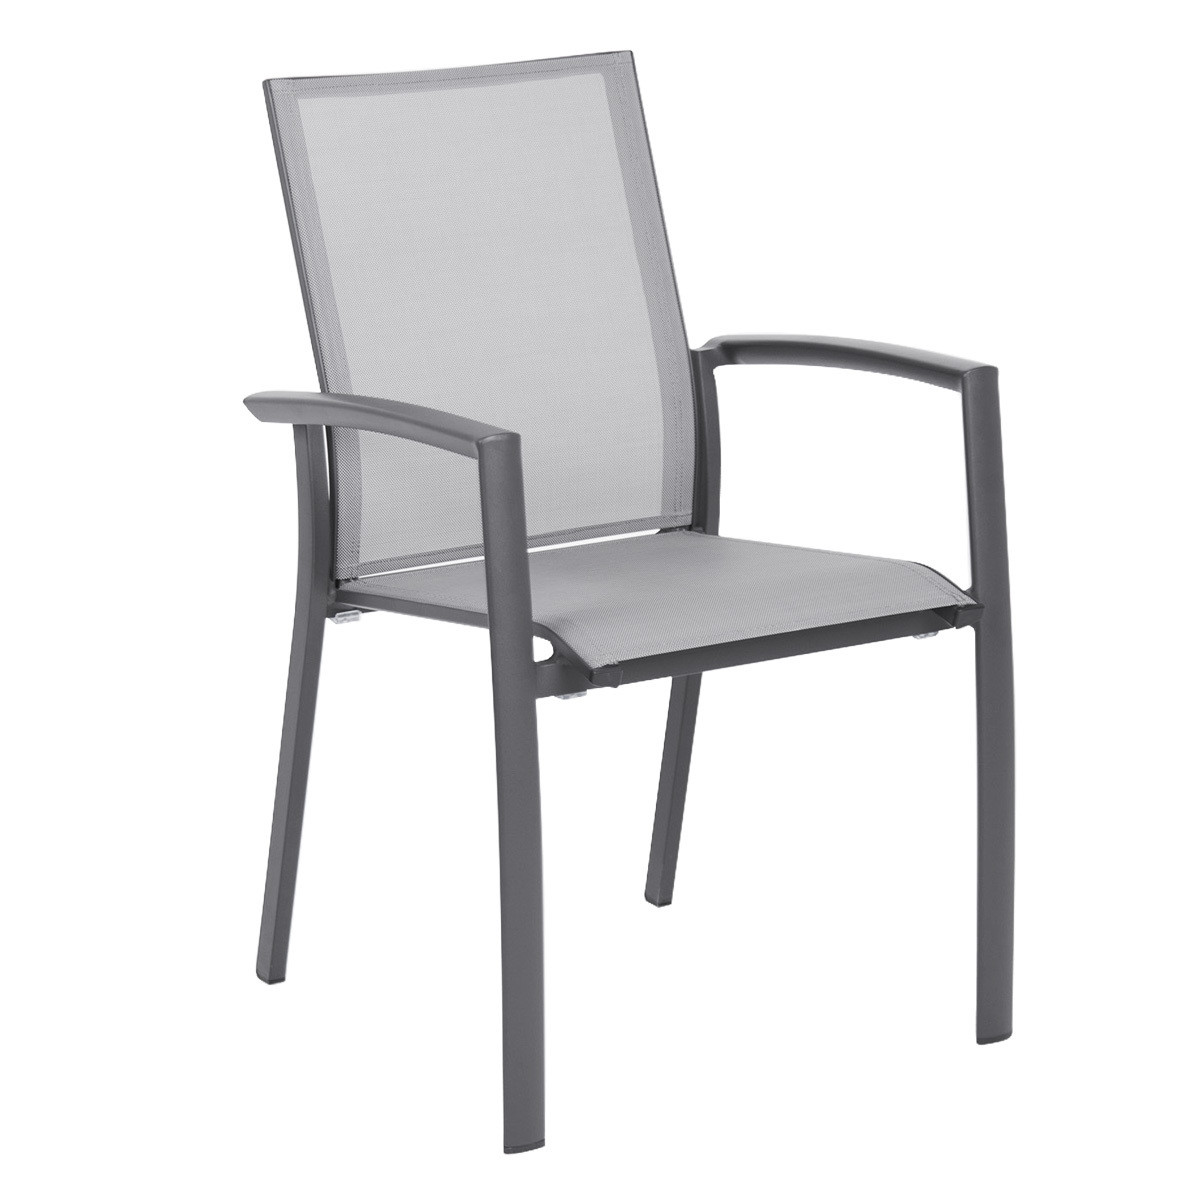 Relaxed Sling Aluminum Dining Chair